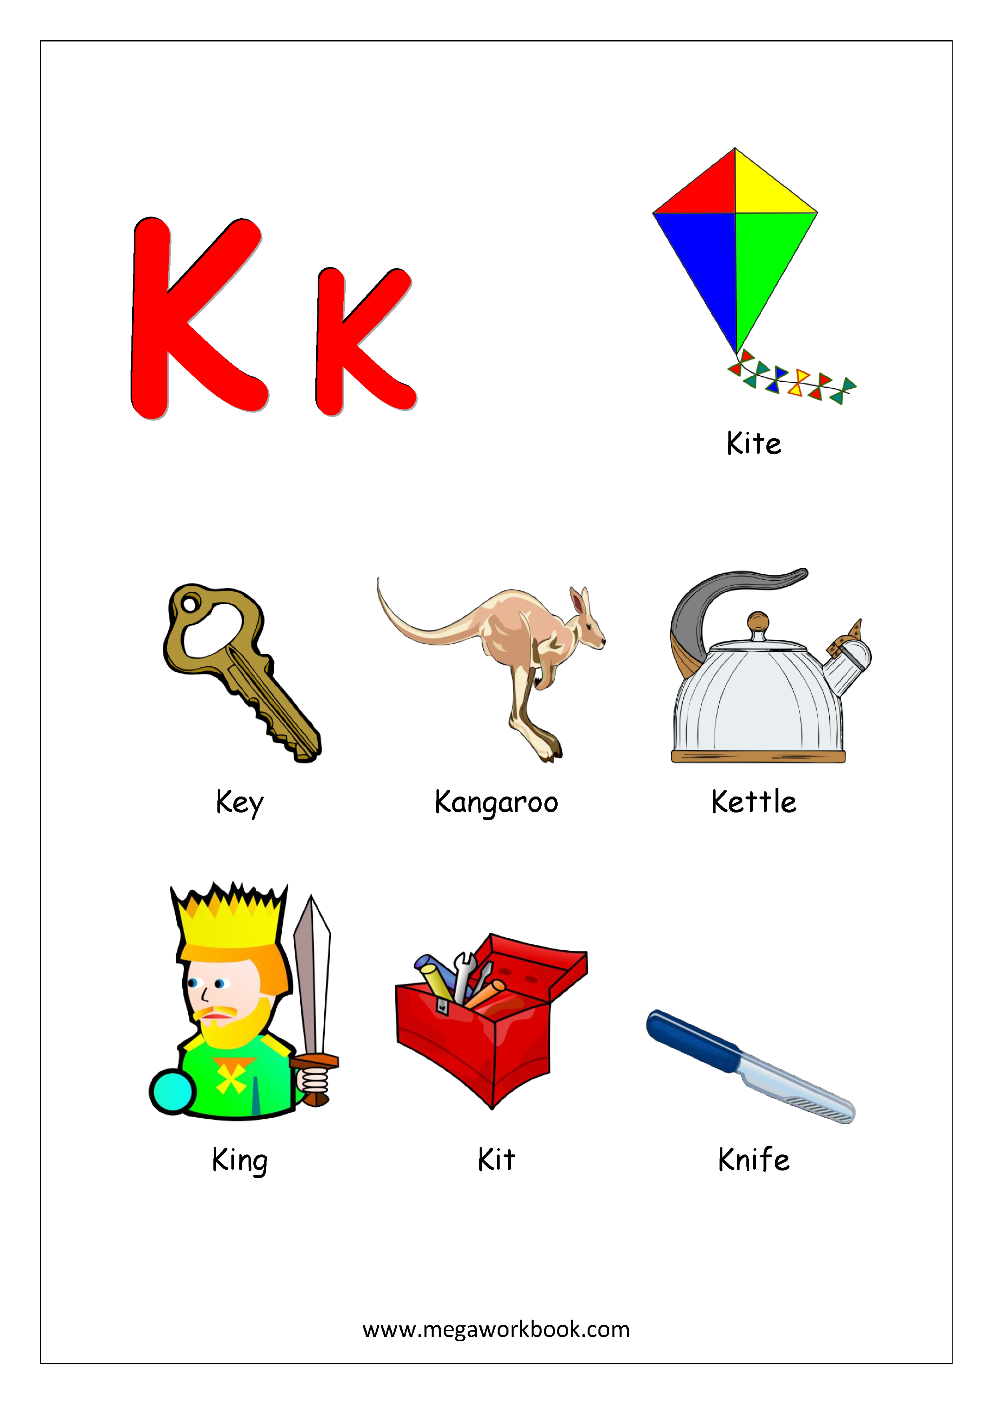 Letter k objects mersnoforum letter k objects altavistaventures Image collections